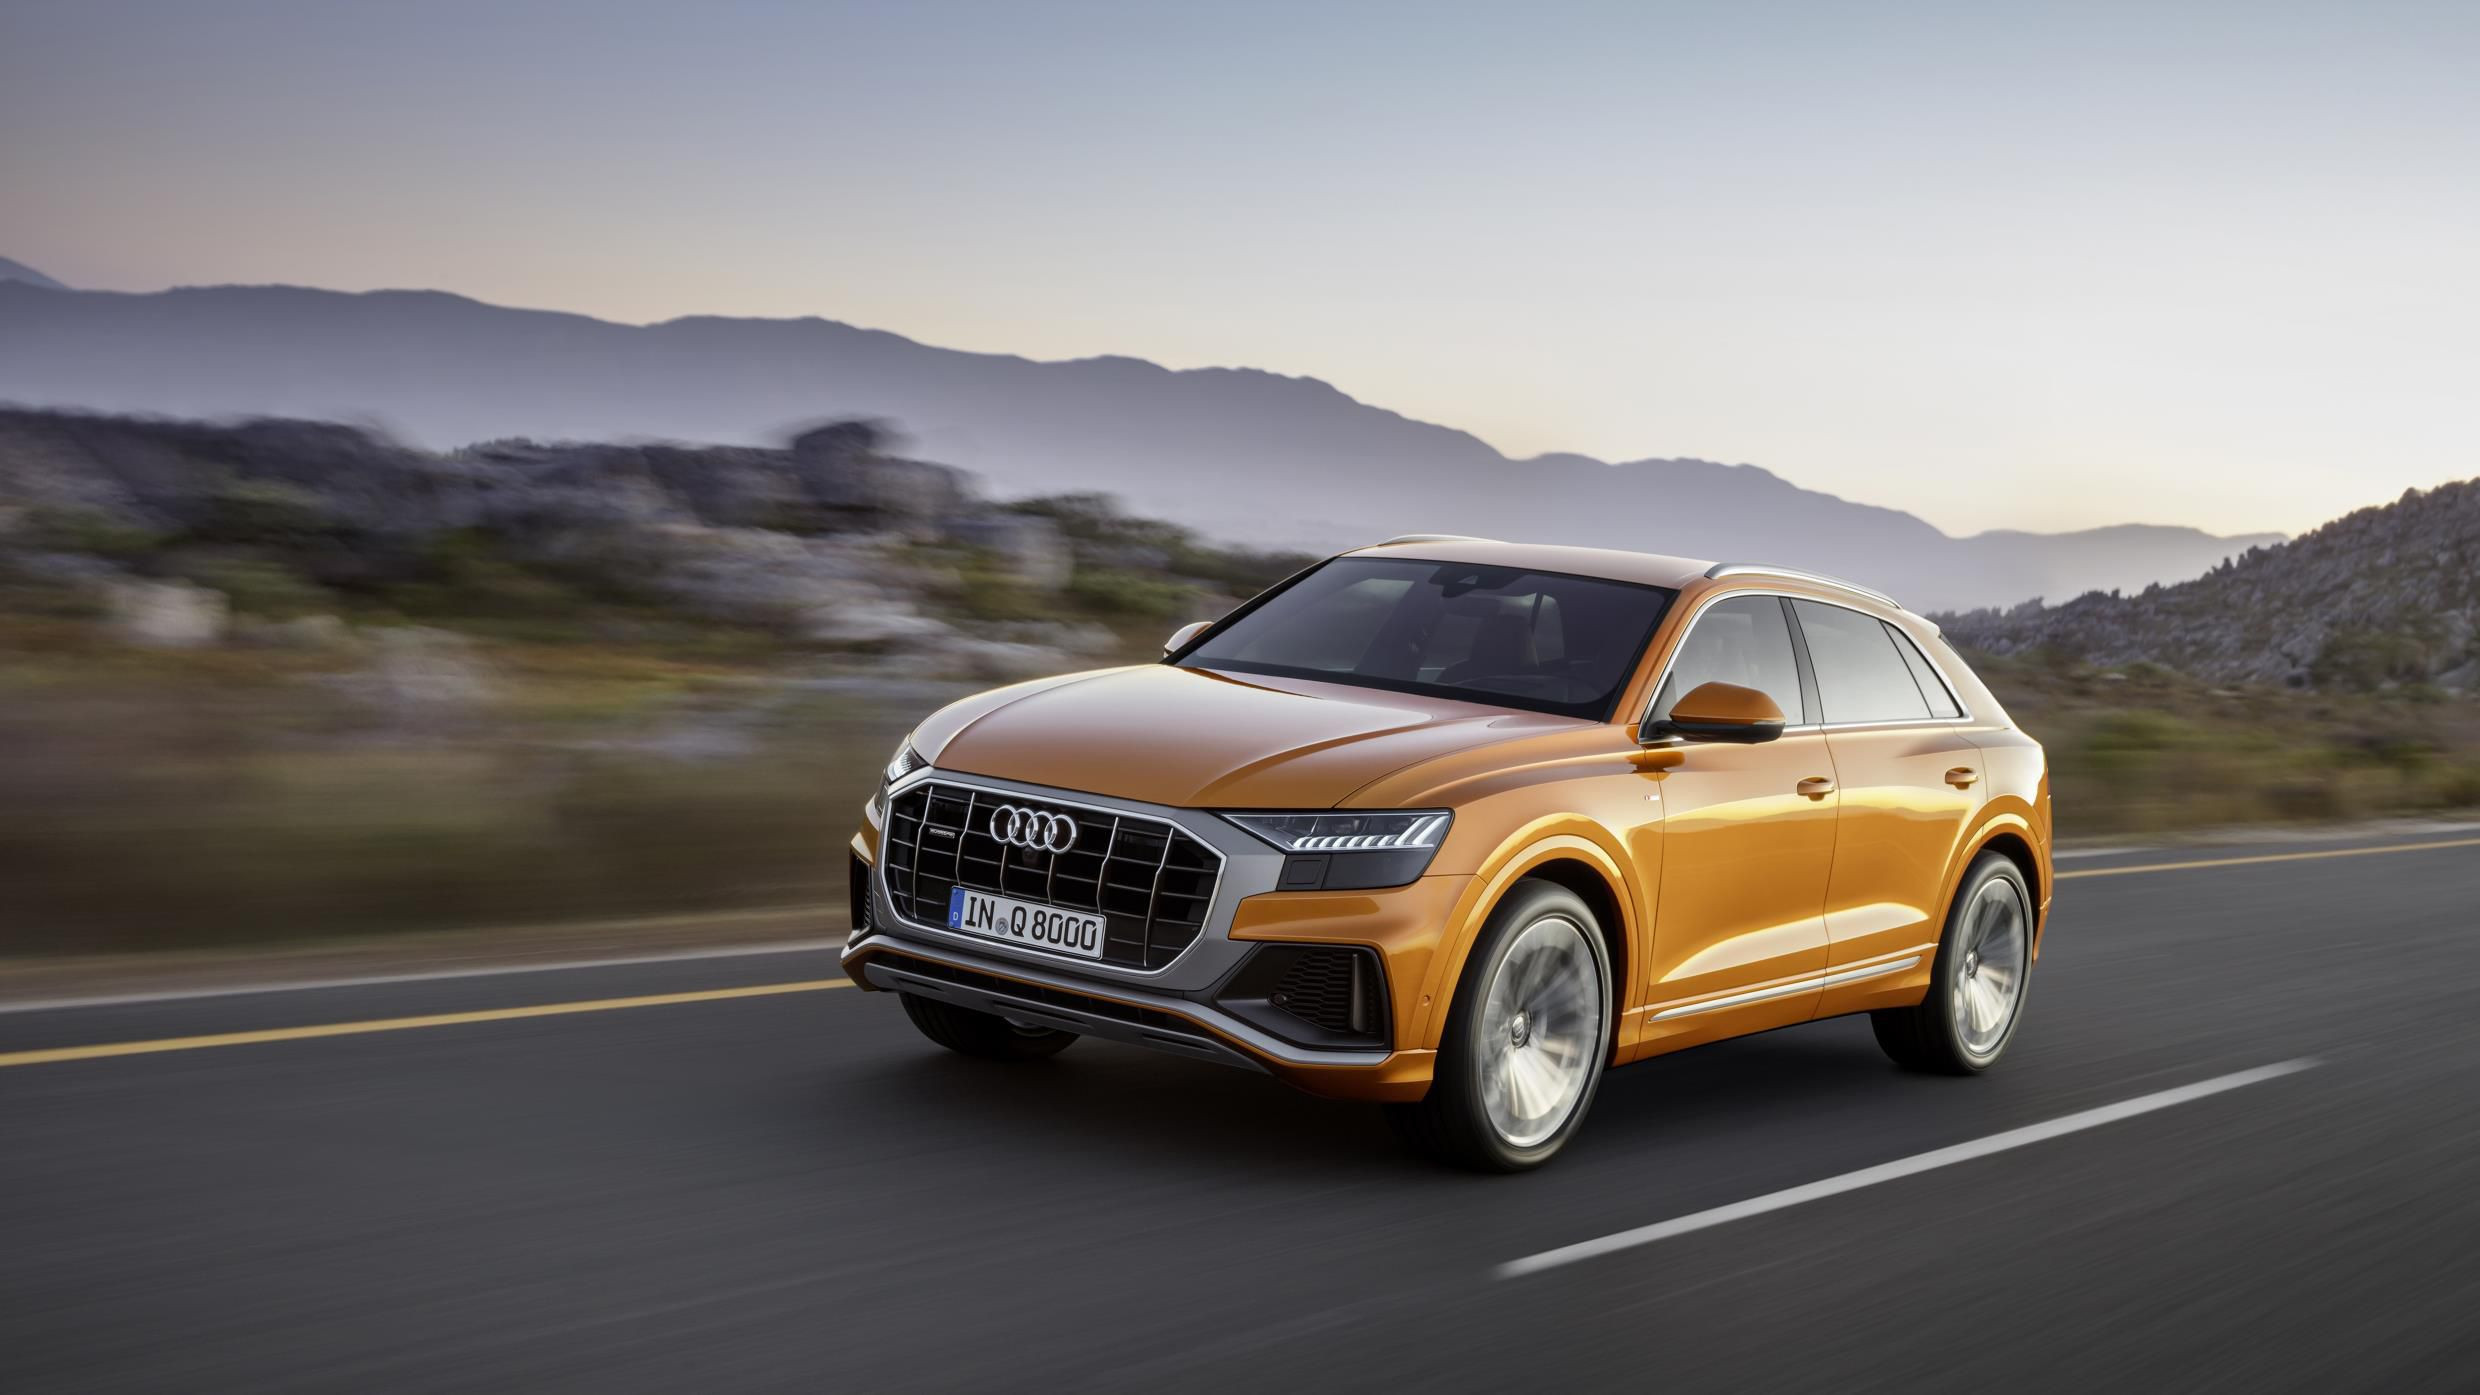 Metallic orange Audi Q8 whizzing along desert road